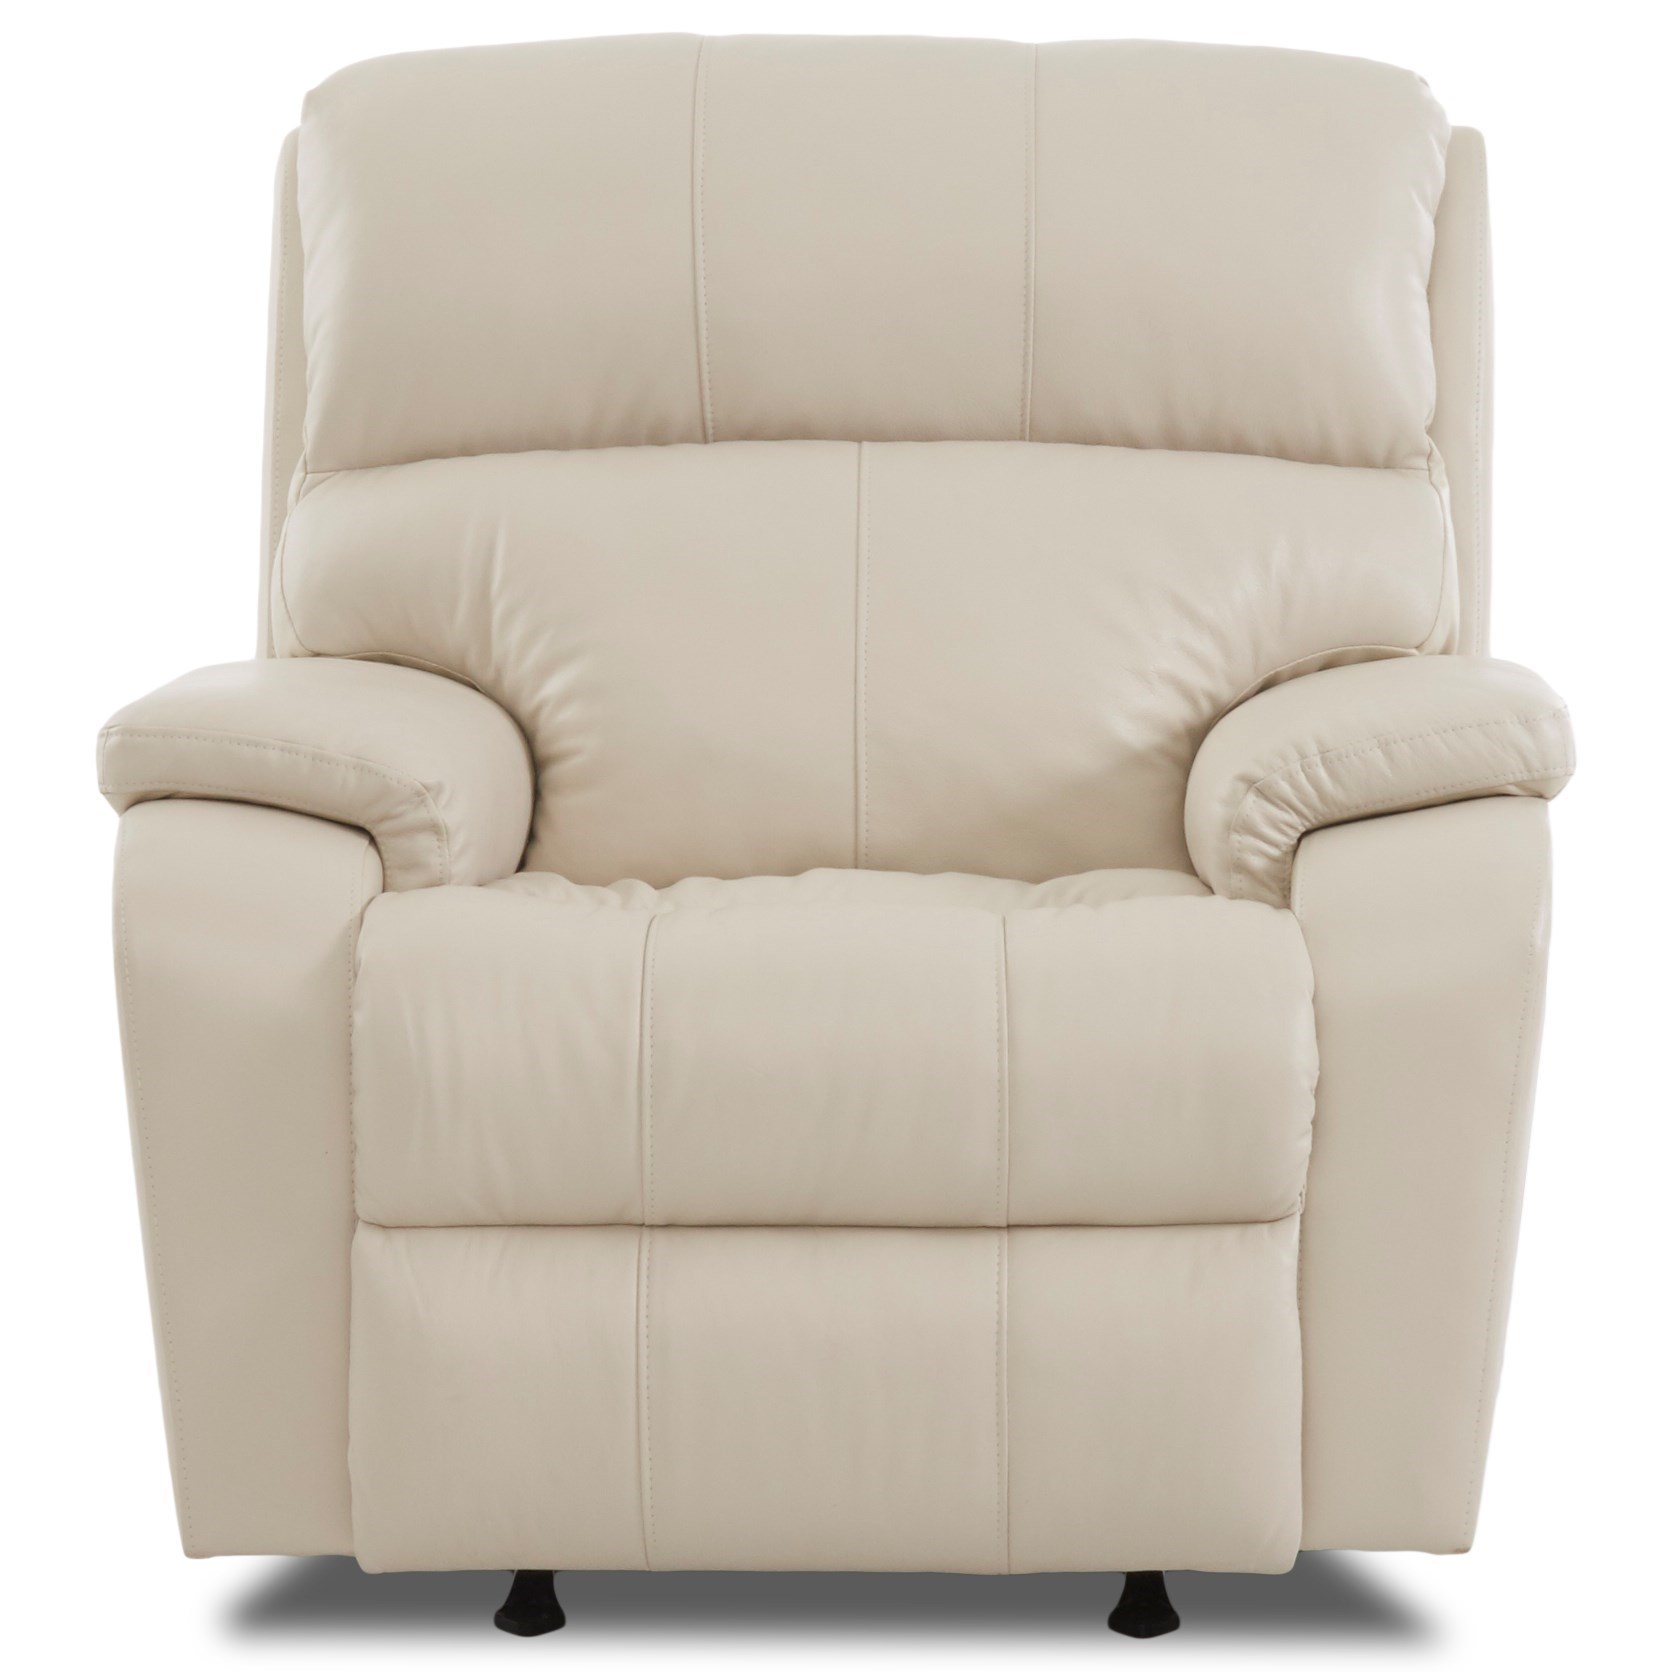 Power Rocking Reclining Chair w/ Pwr Head